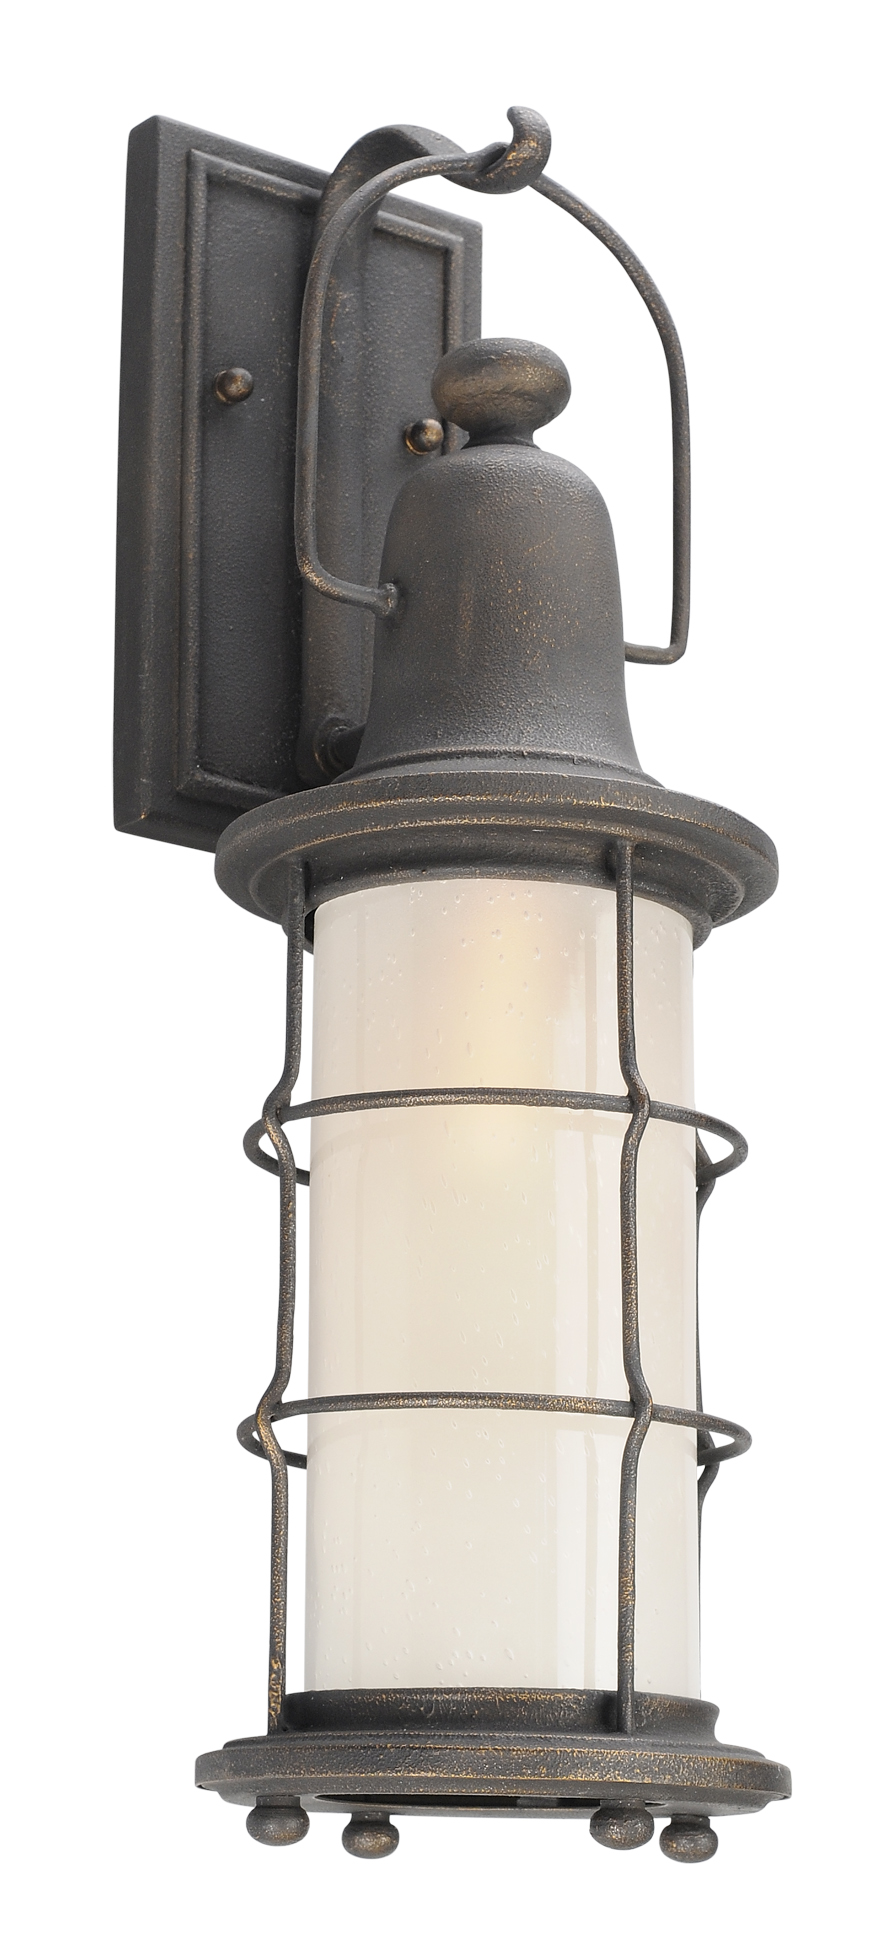 Iron Outdoor Wall Sconces : Troy B4441 Maritime Hand Worked Iron Outdoor Lighting Sconce - TRO-B4441